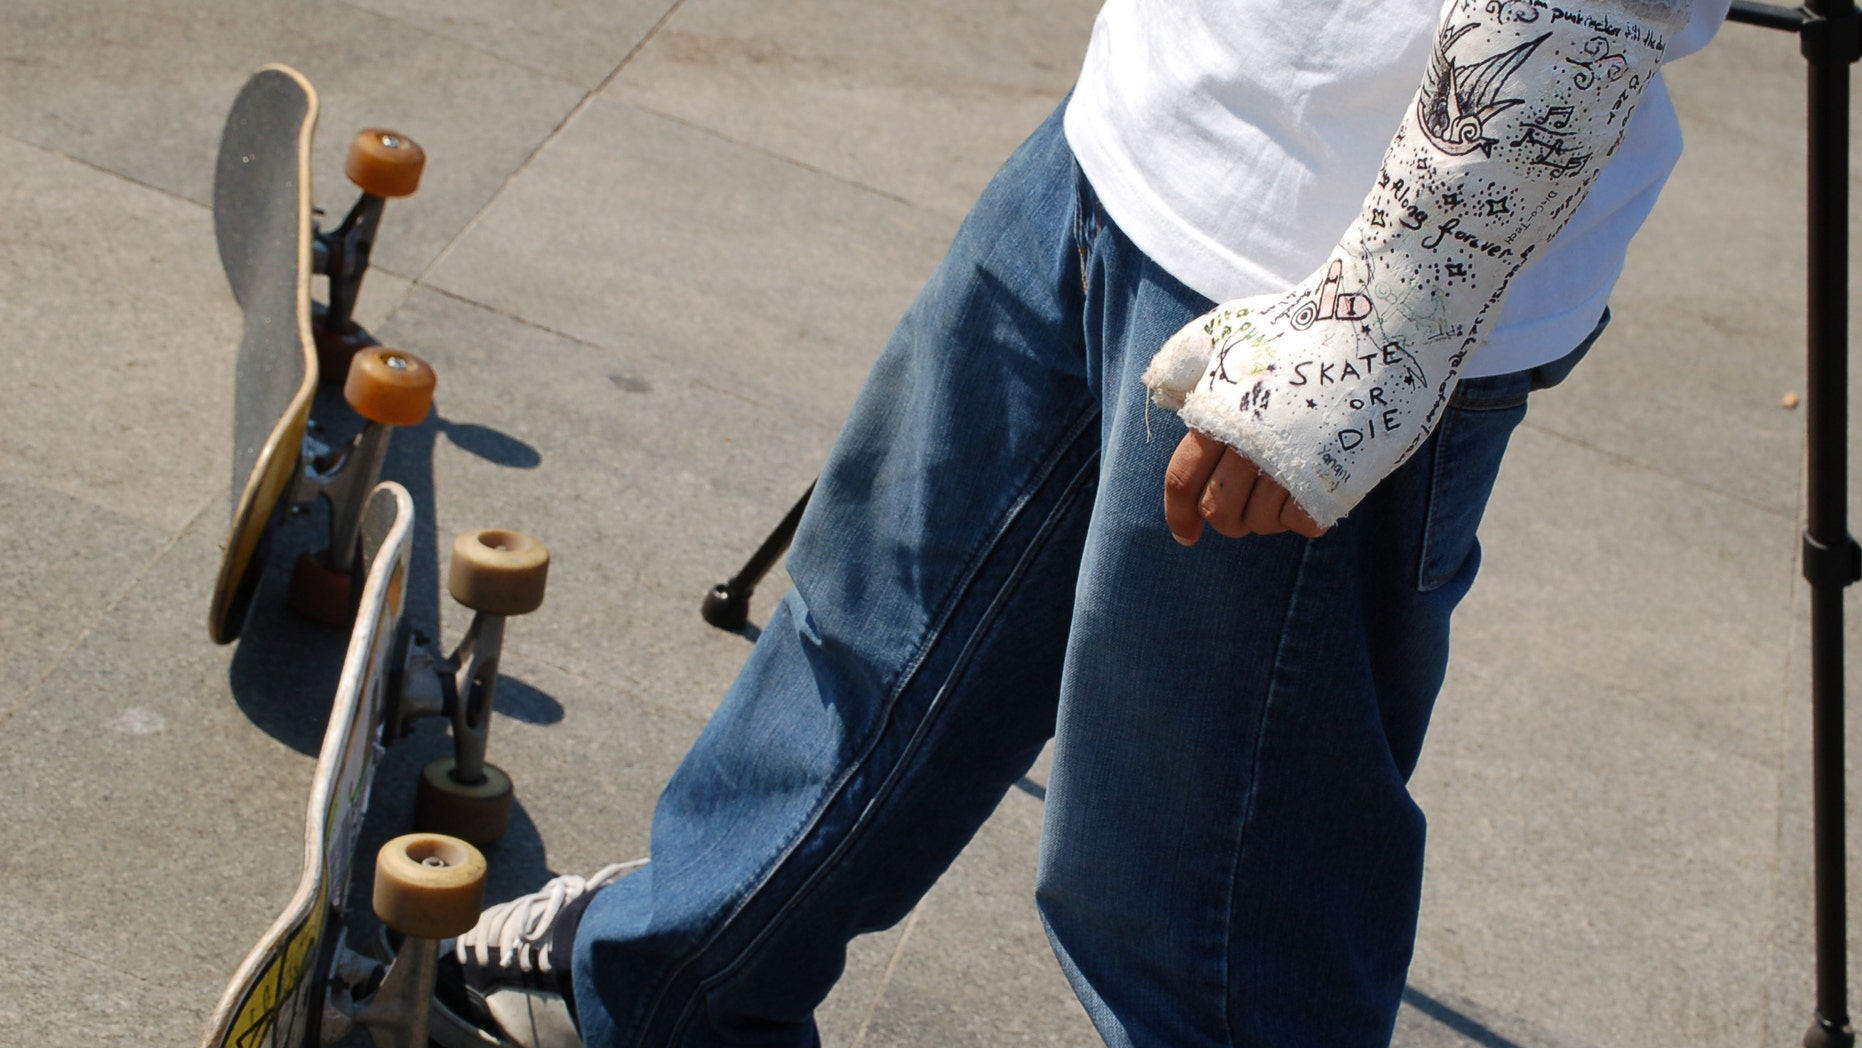 a young skater in Istanbul he has a very nice plaster in his wrist.